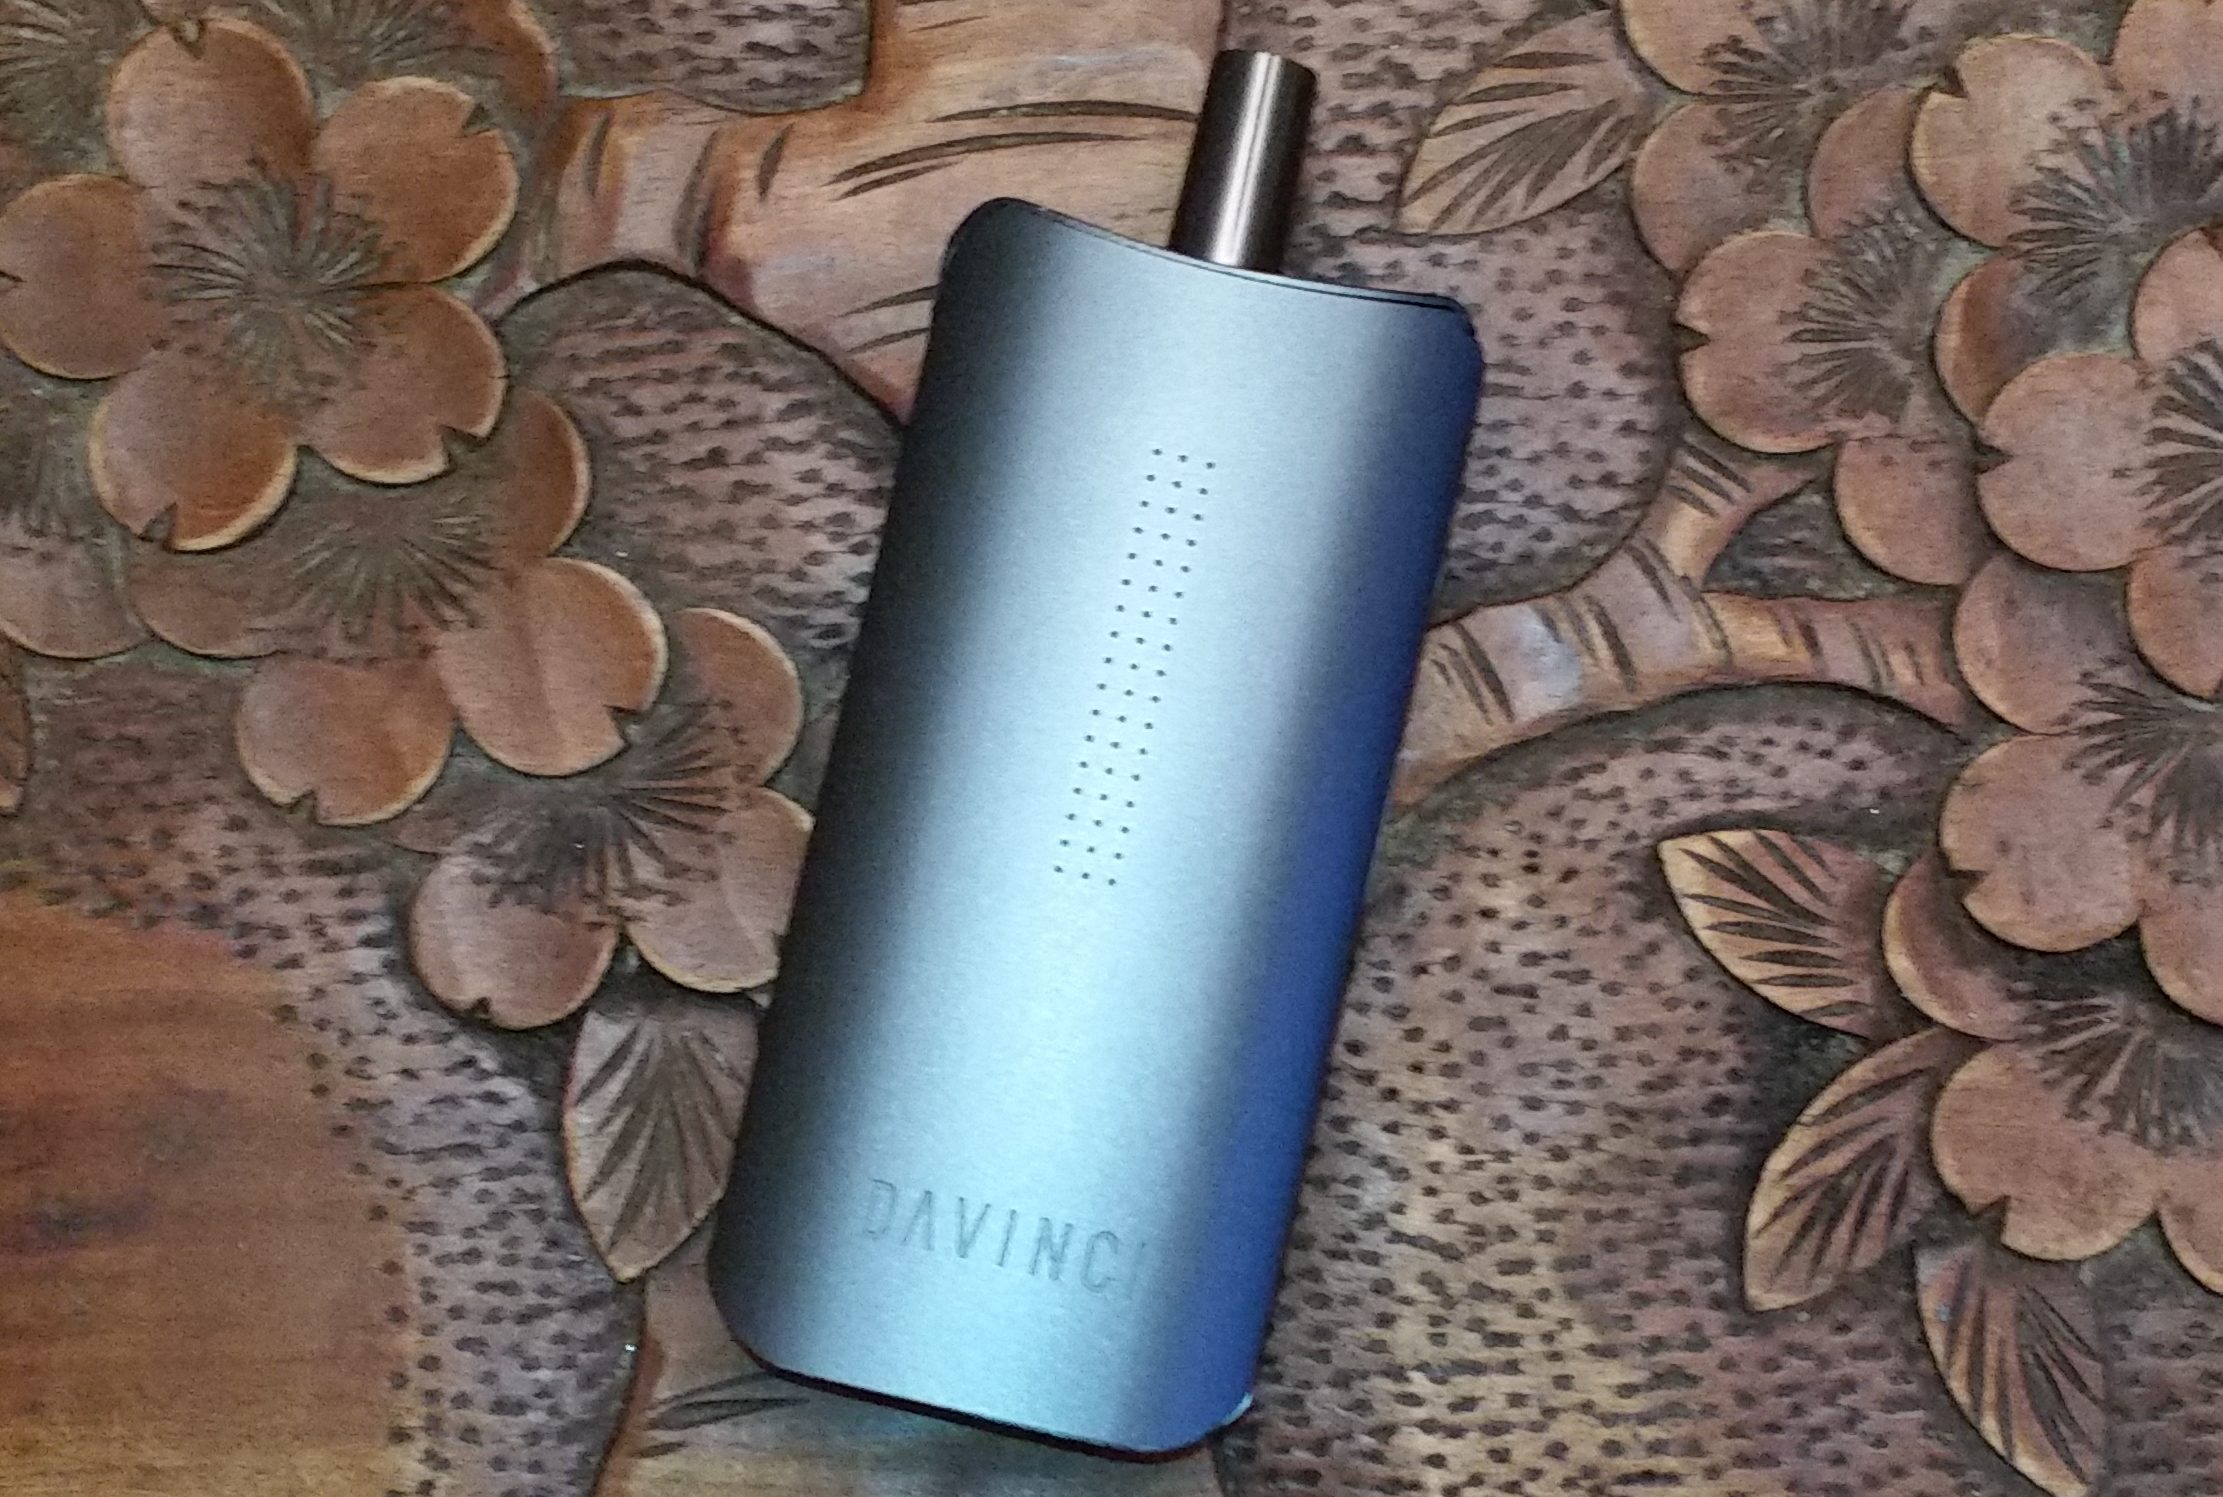 Best Portable Weed Vaporizers -Found, Tested and Reviewed -The DaVinci IQ Review